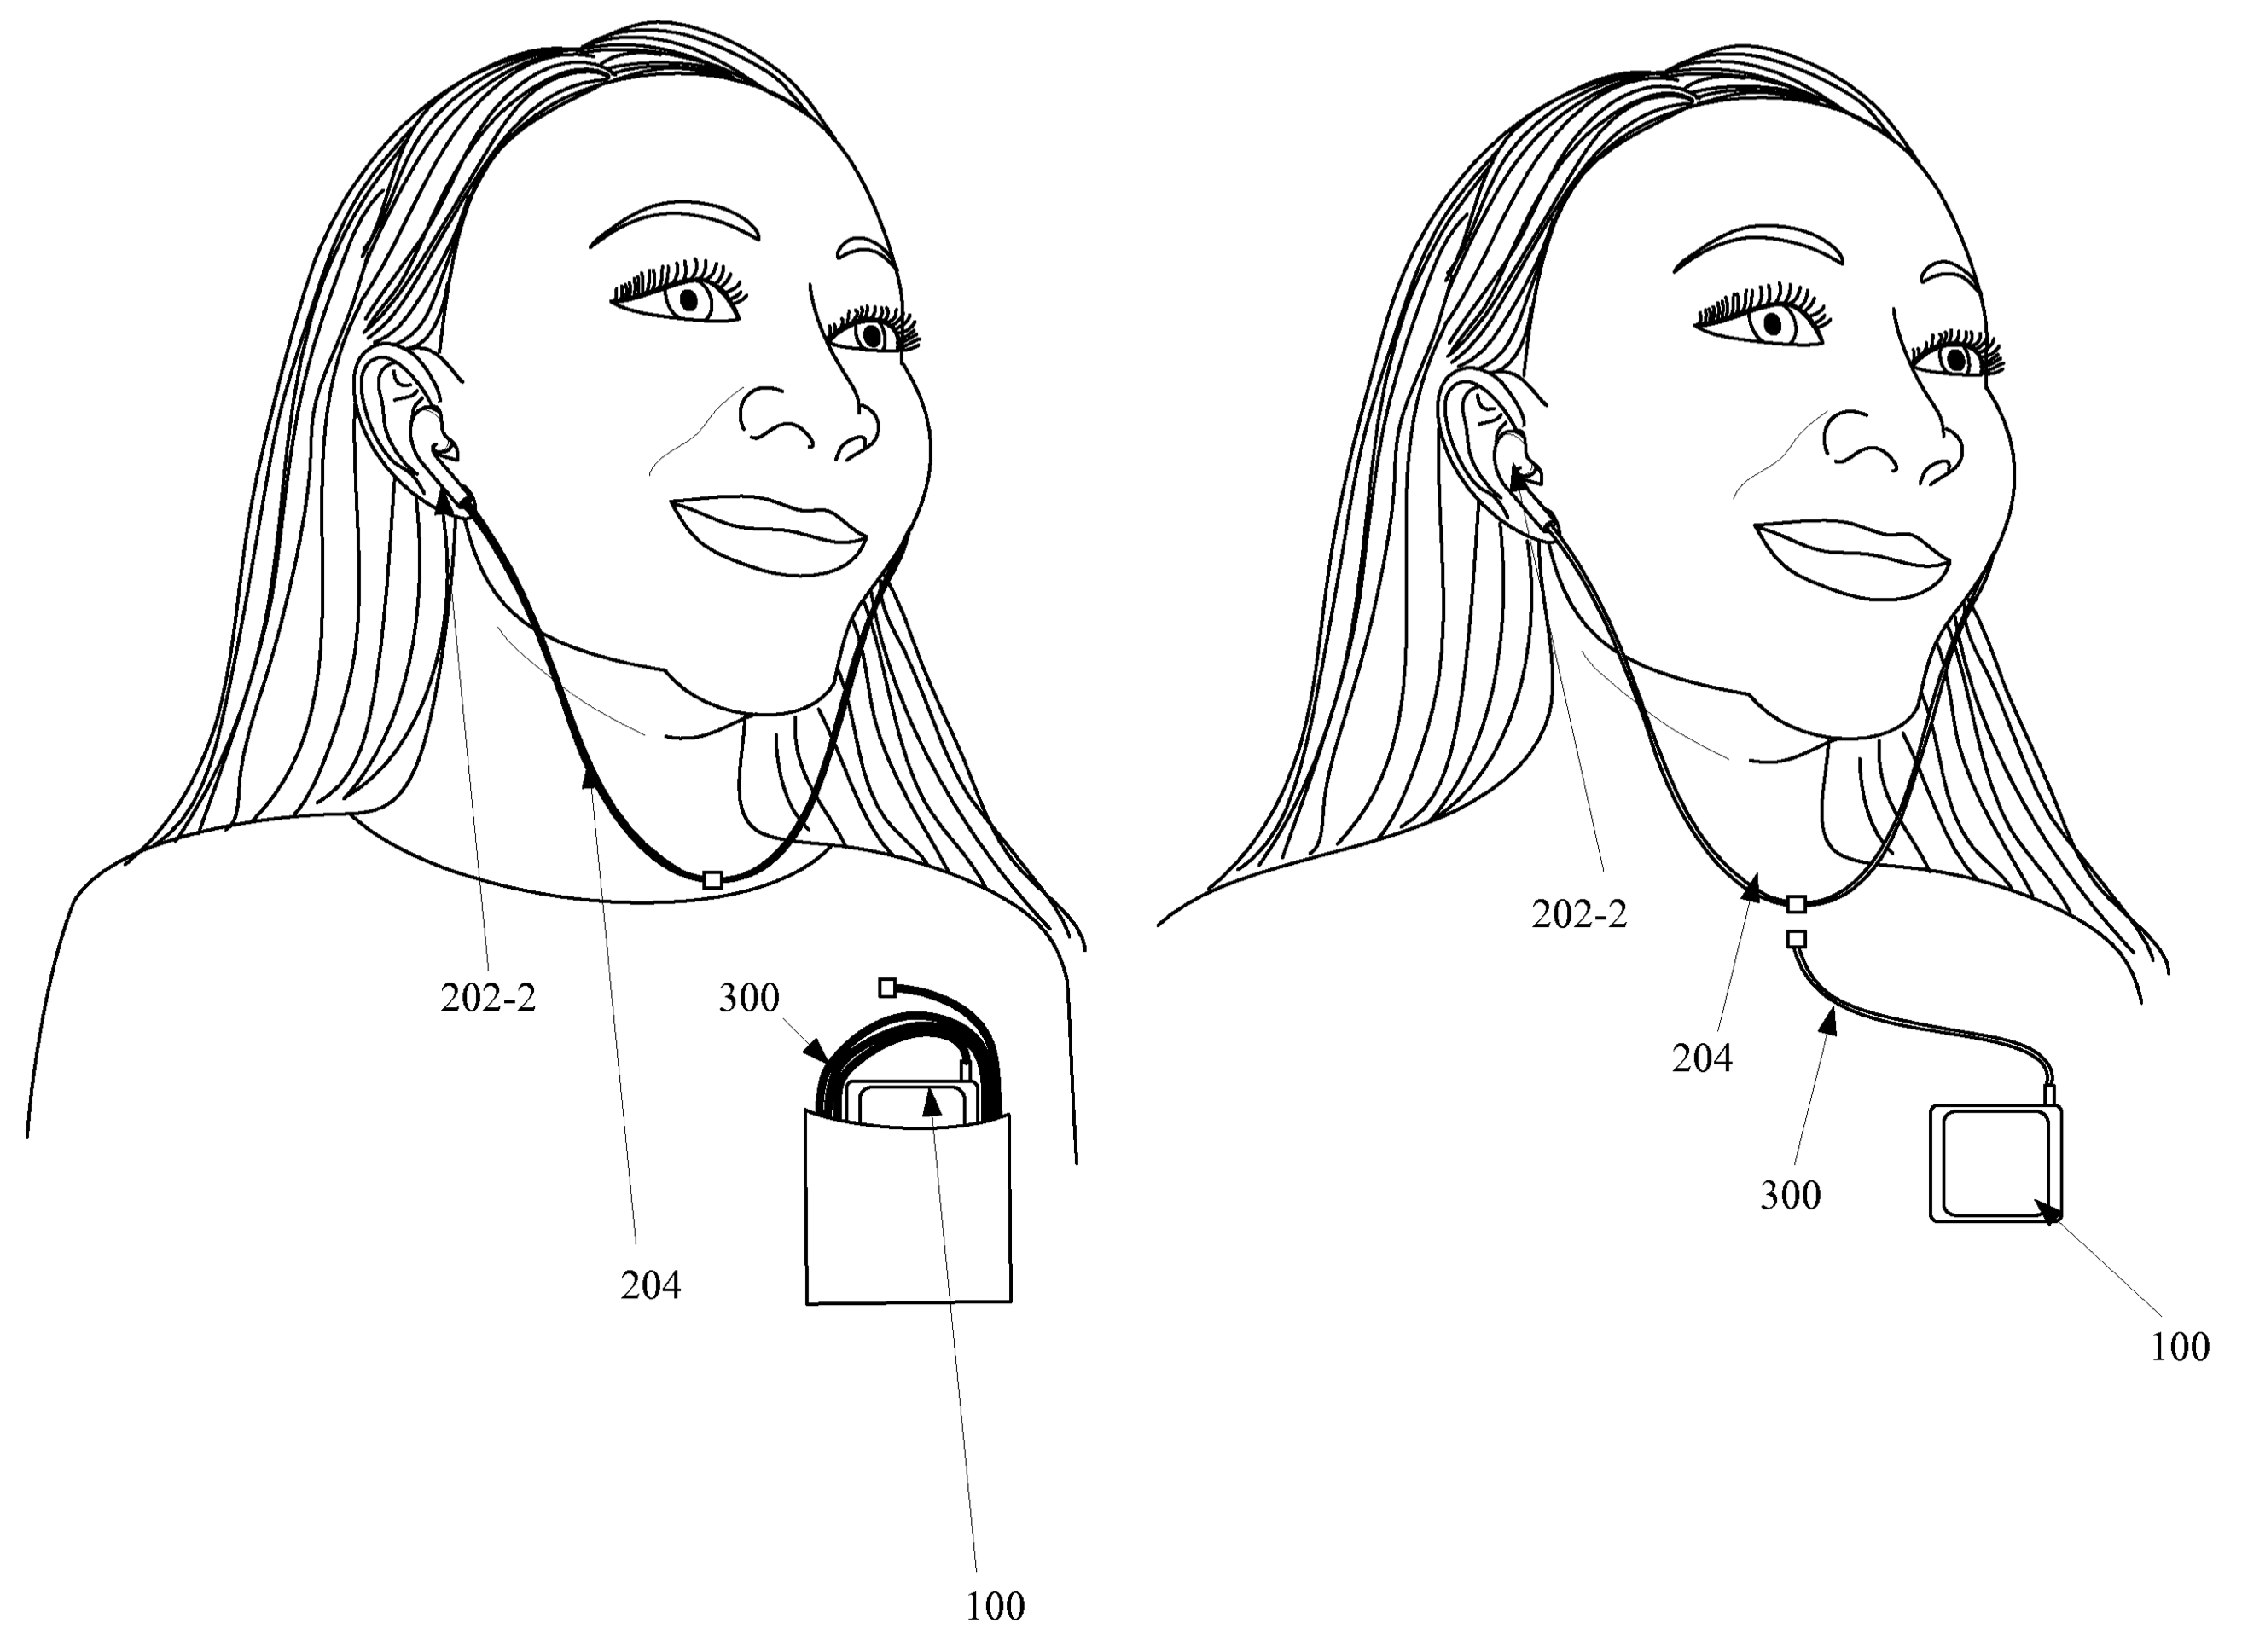 Apple patent magnetically detachable earbuds for iPhone drawing 002